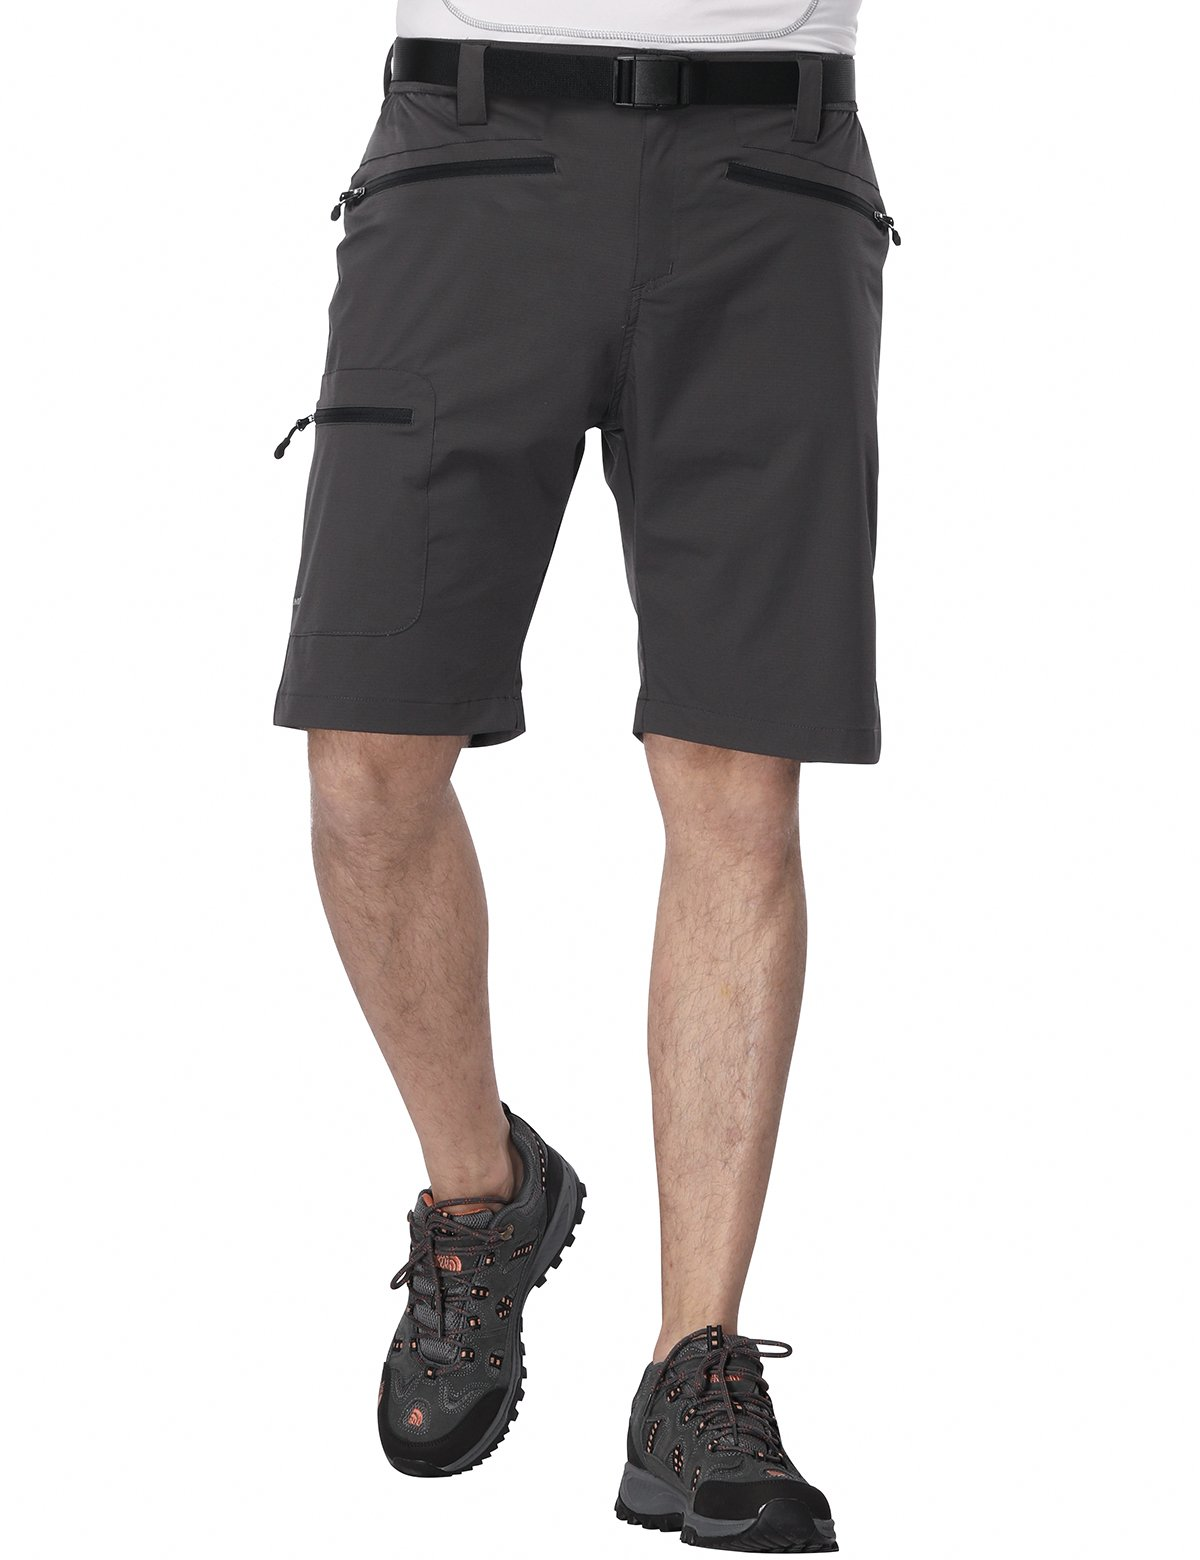 MIERSPORT Men's Travel Cargo Short Lightweight Water Resistant Hiking Short with 5 Pockets, Quick Dry Nylon, Side Elastic Waist, Graphite Gray, XL